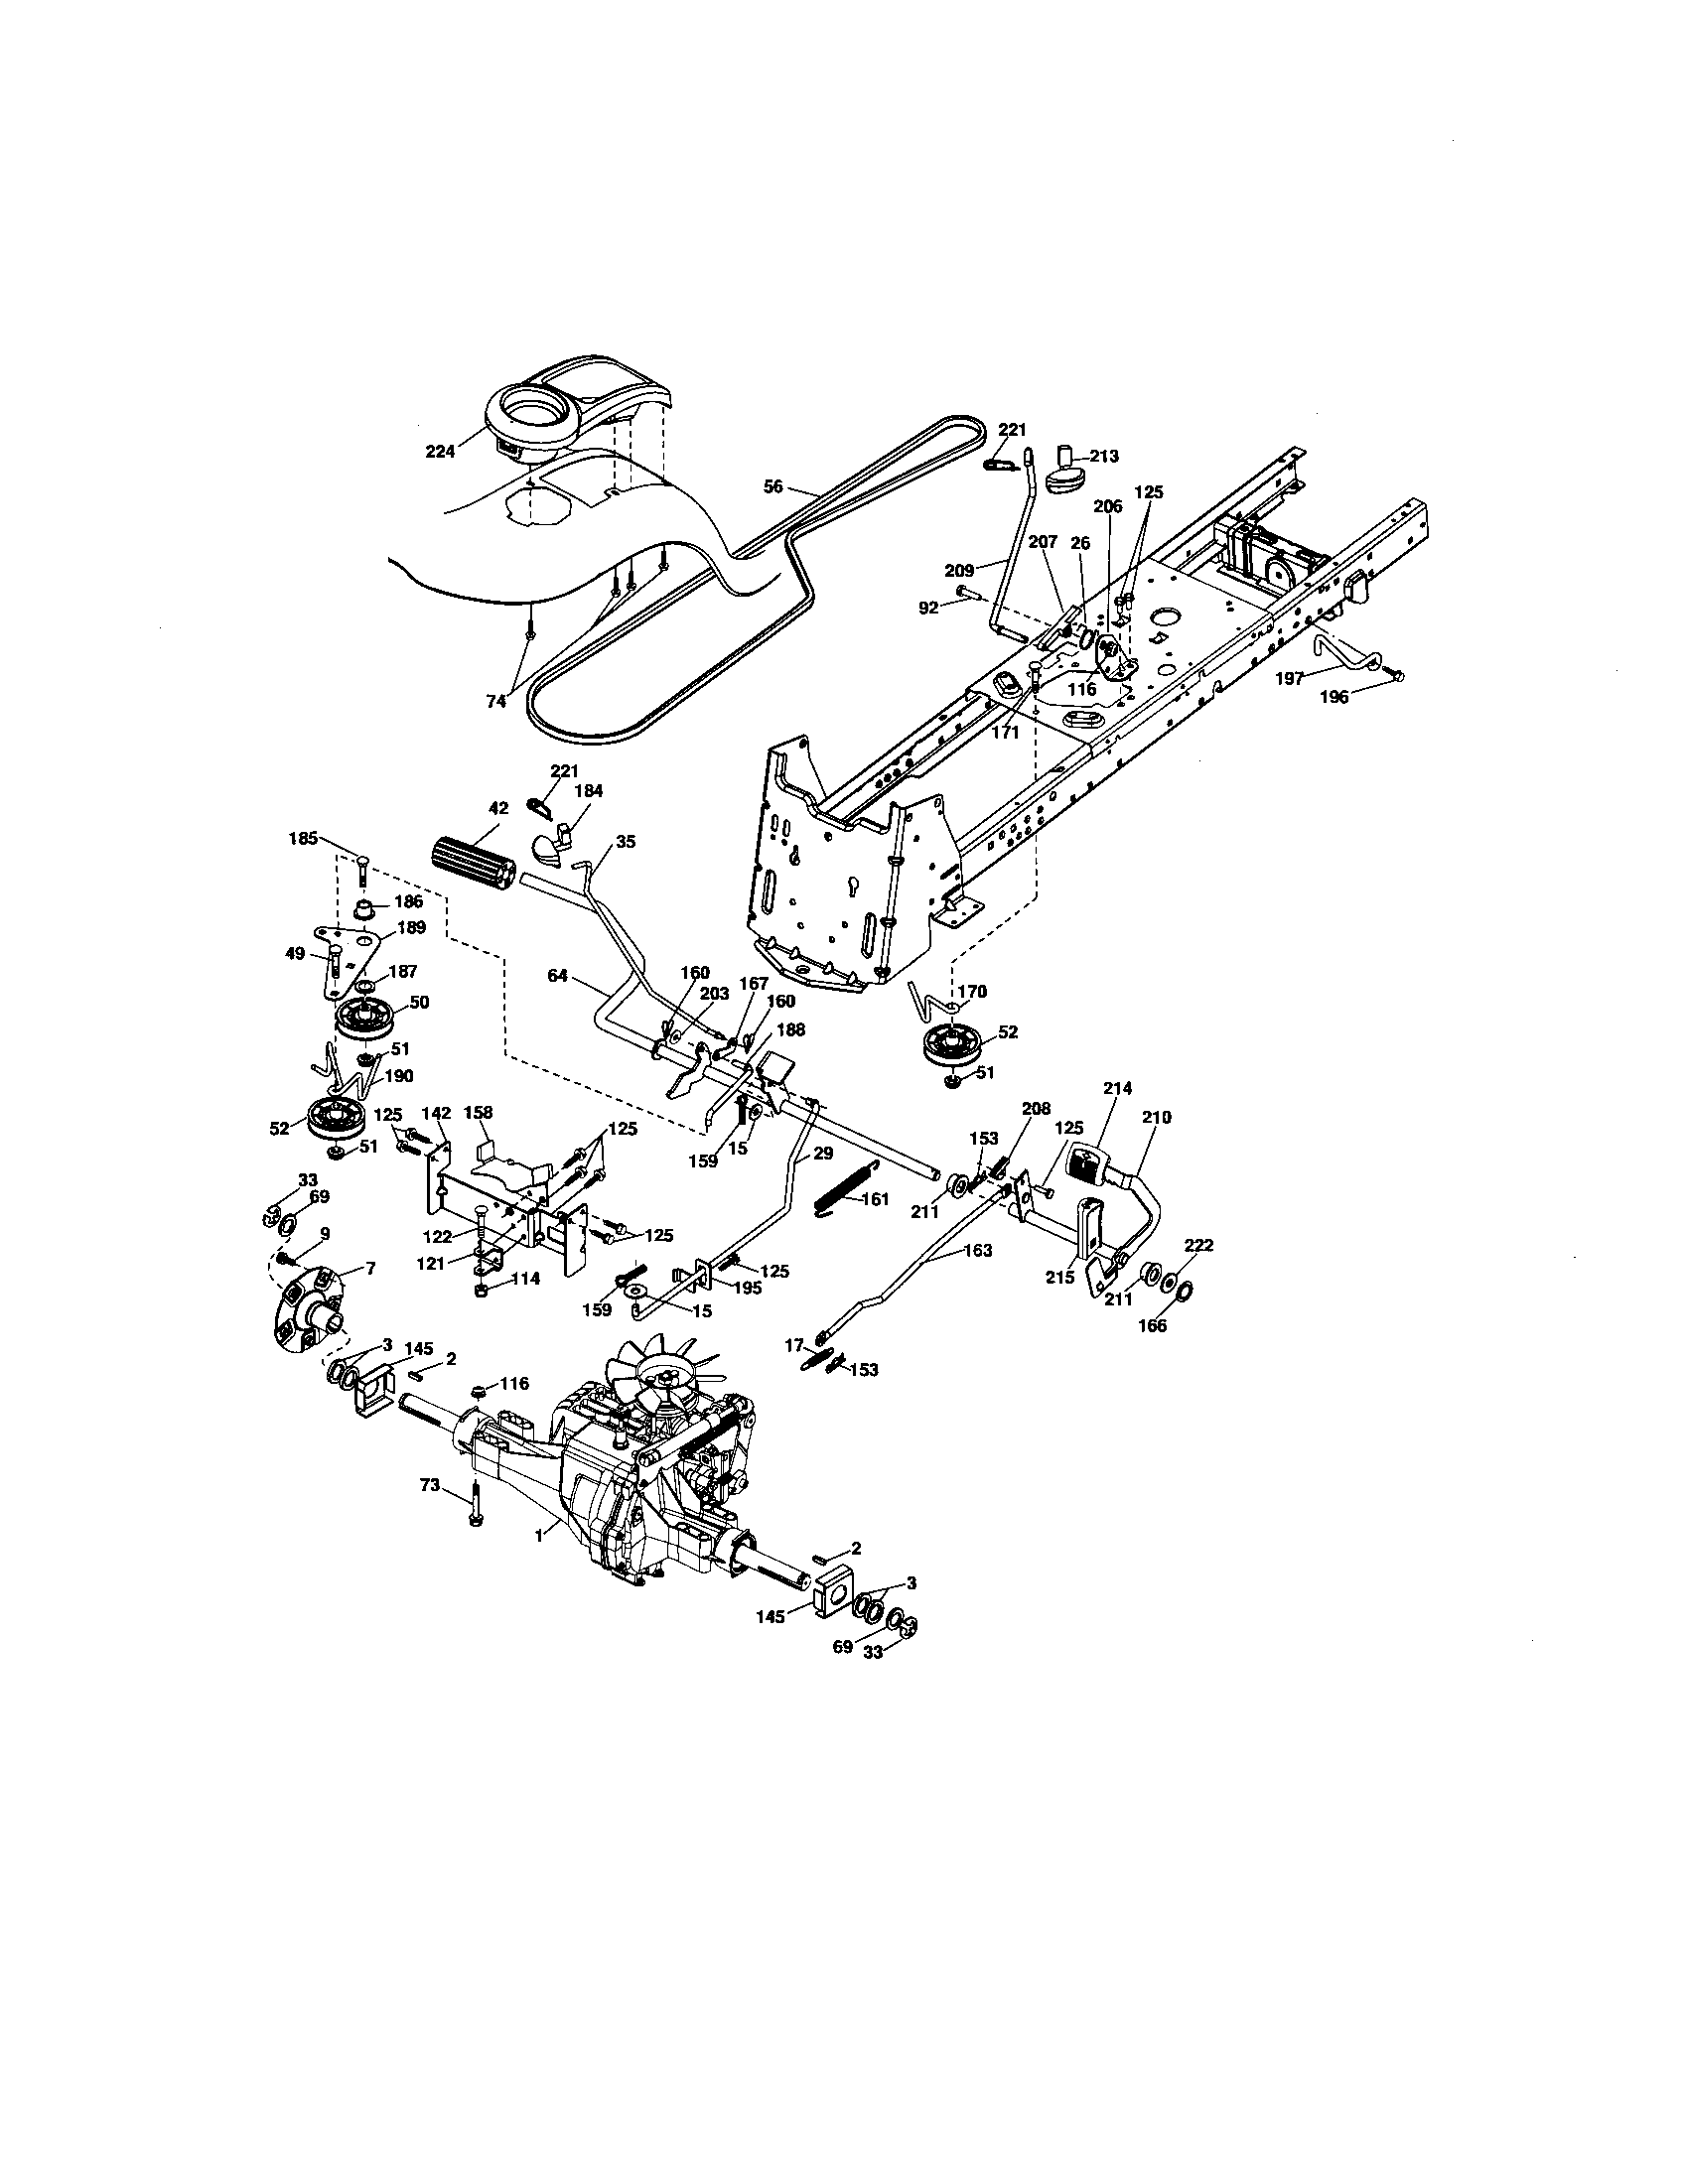 [WRG-1757] Wiring Diagram For Gs6500 Tractor